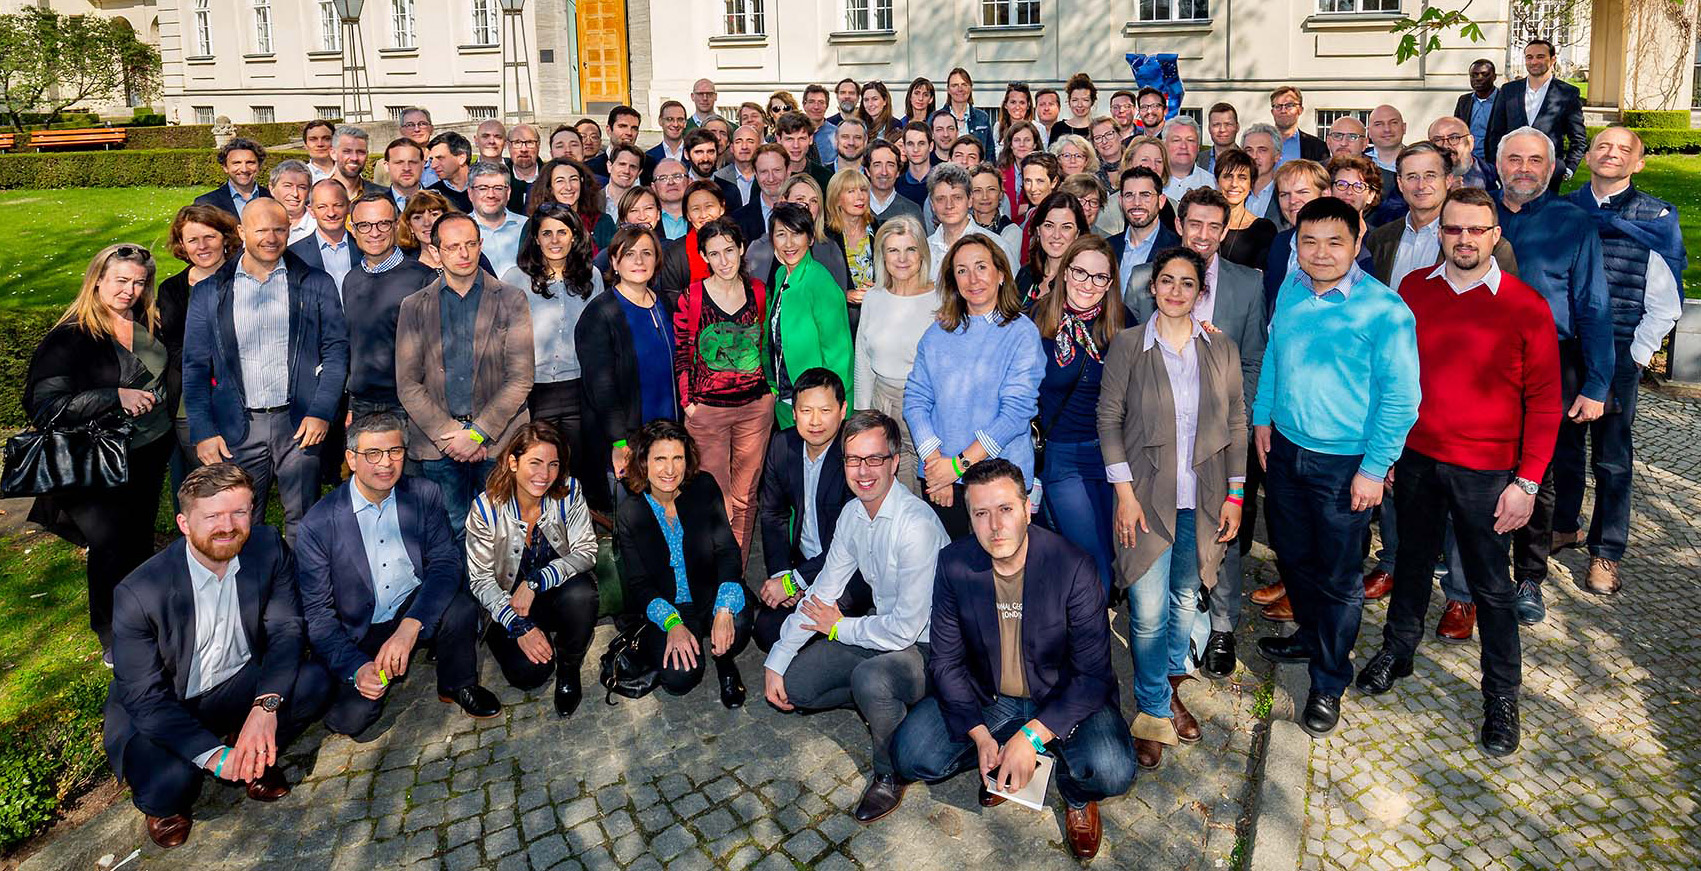 ESCP Europe's multinational faculty met April 7-9 at the school's Berlin campus.